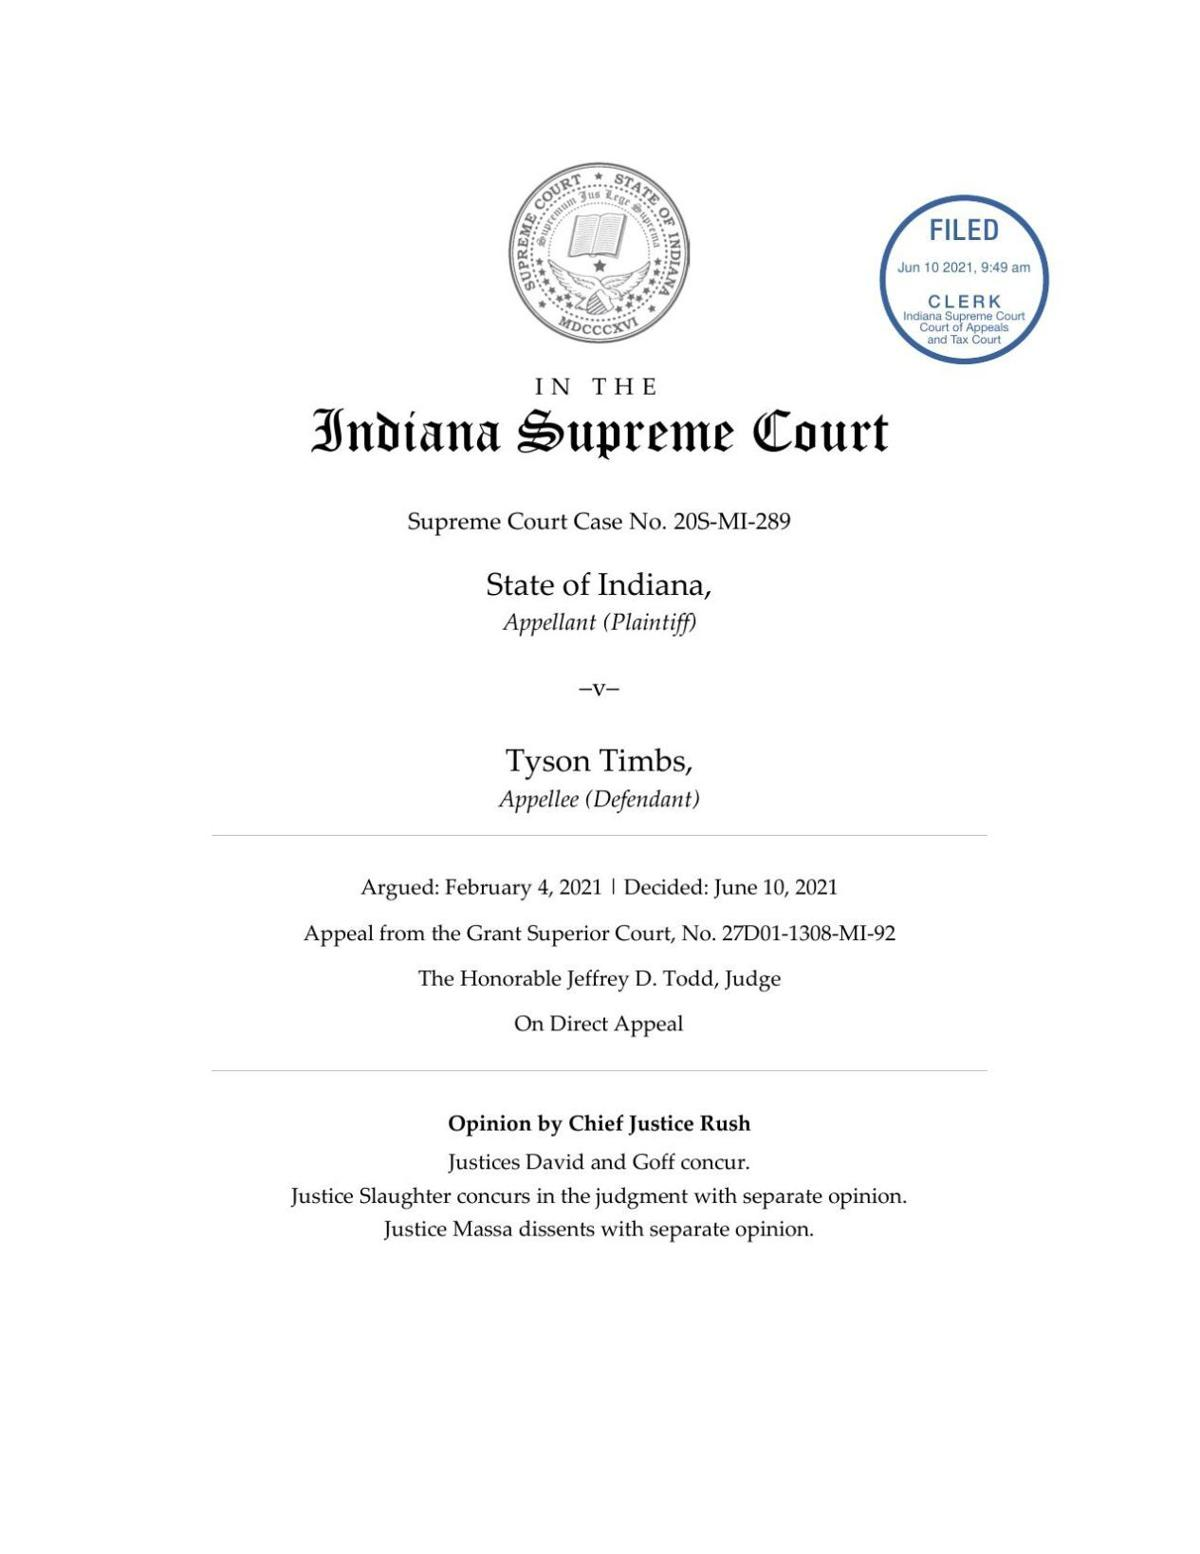 Indiana v. Timbs ruling of Indiana Supreme Court